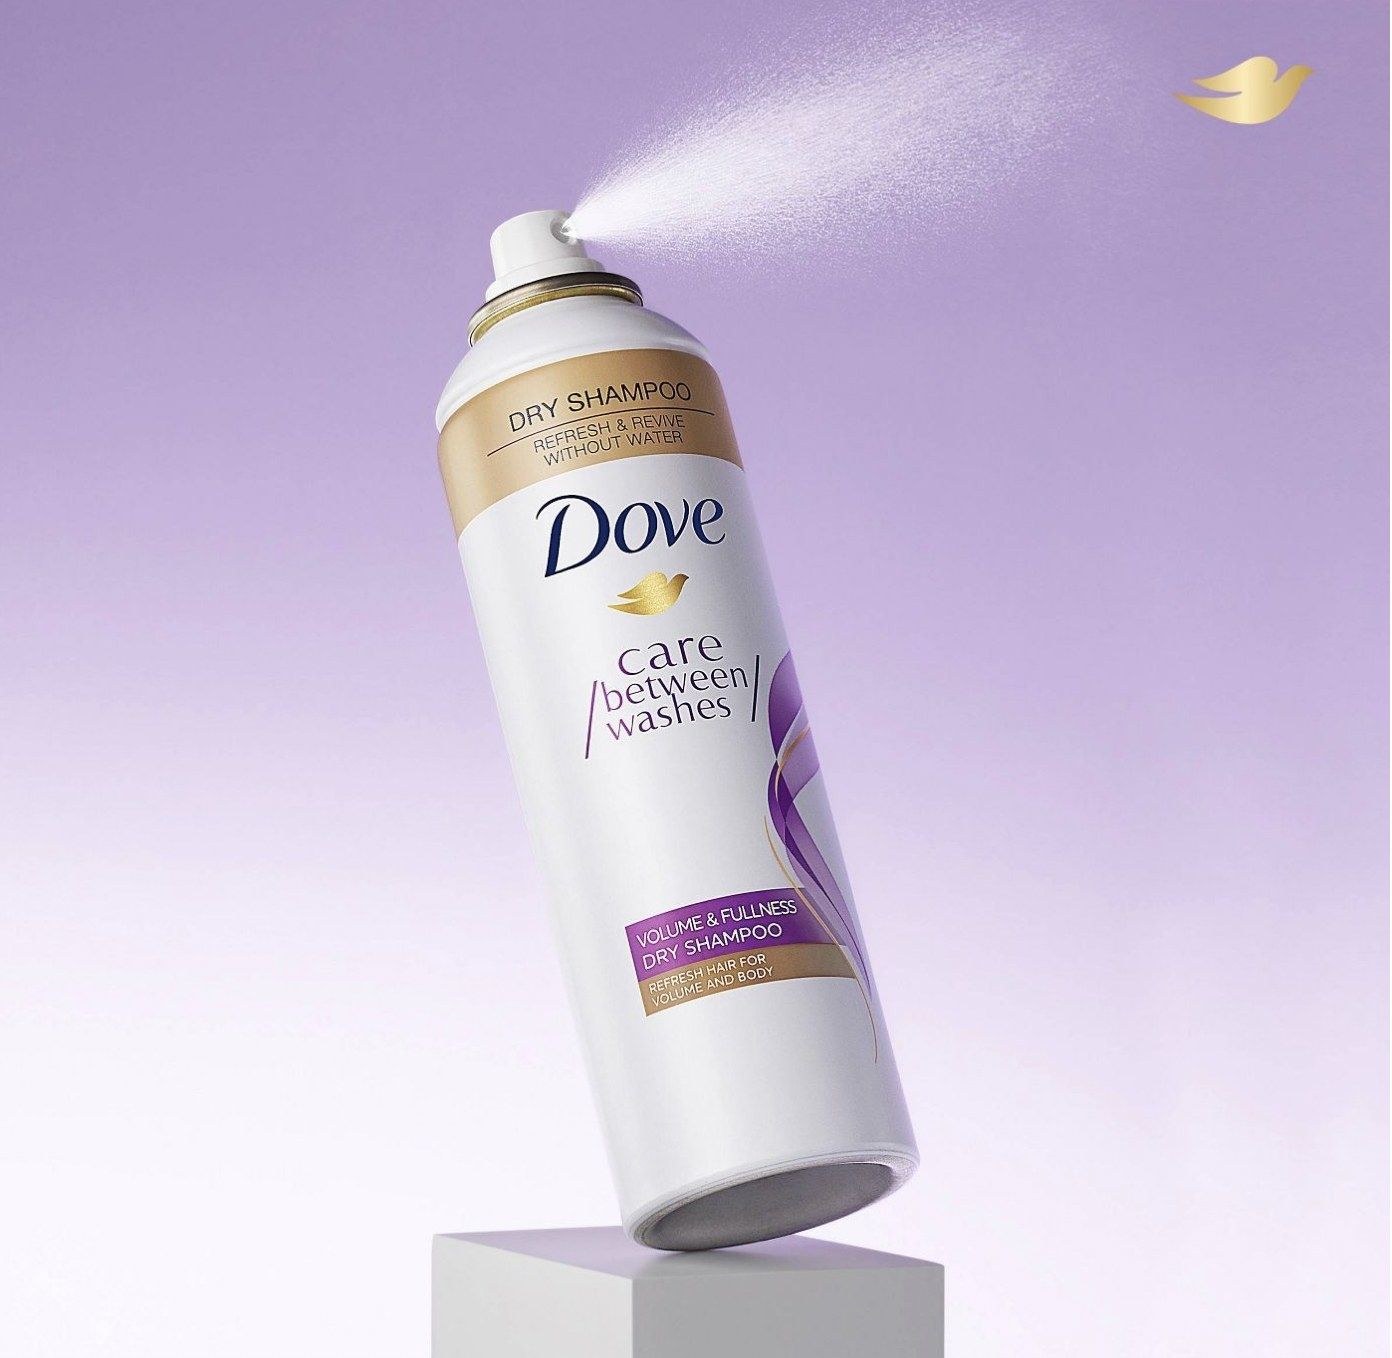 A can of dry shampoo